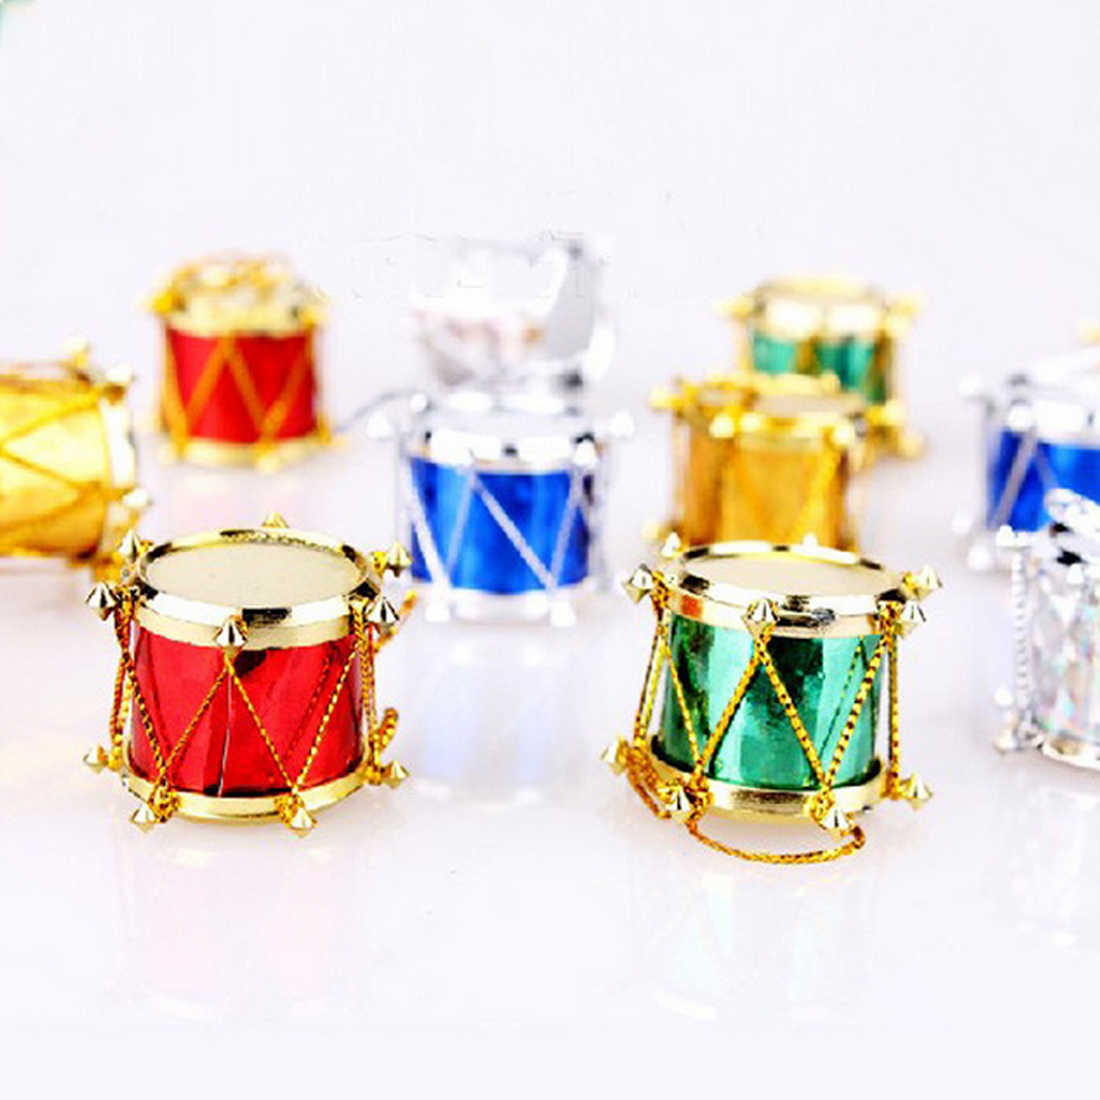 Christmas Drum.12pcs Wedding Party Christmas Home Decorations Colorful Drums Ornament Children S Toy New Year S Products